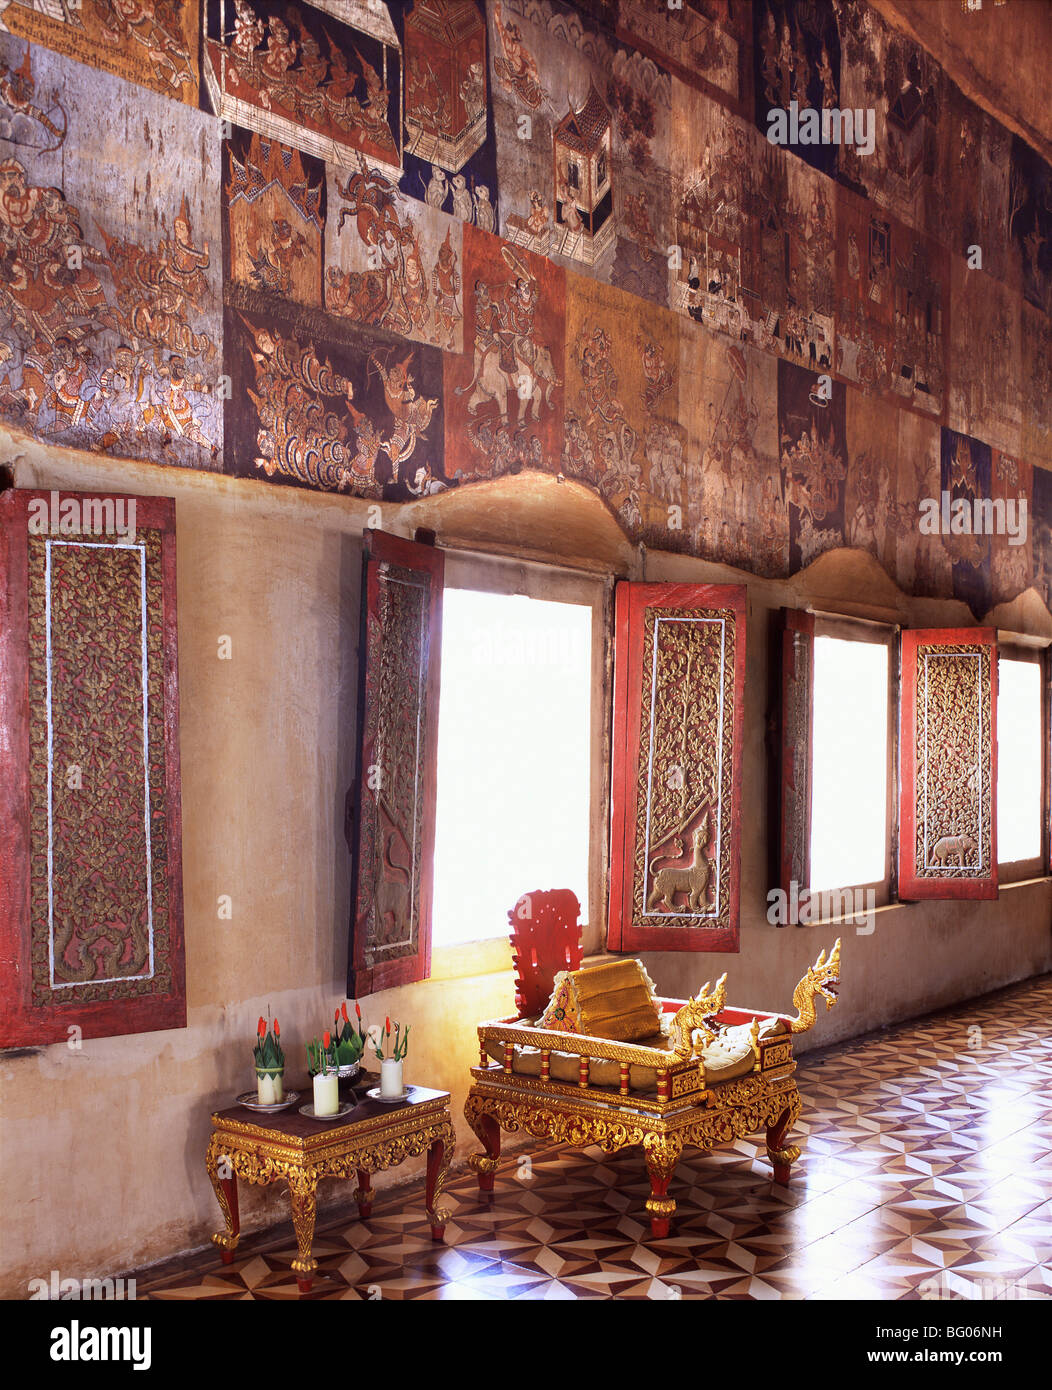 19th century temple murals at Wat Bo, Siem Reap, Cambodia, Indochina, Southeast Asia, Asia - Stock Image